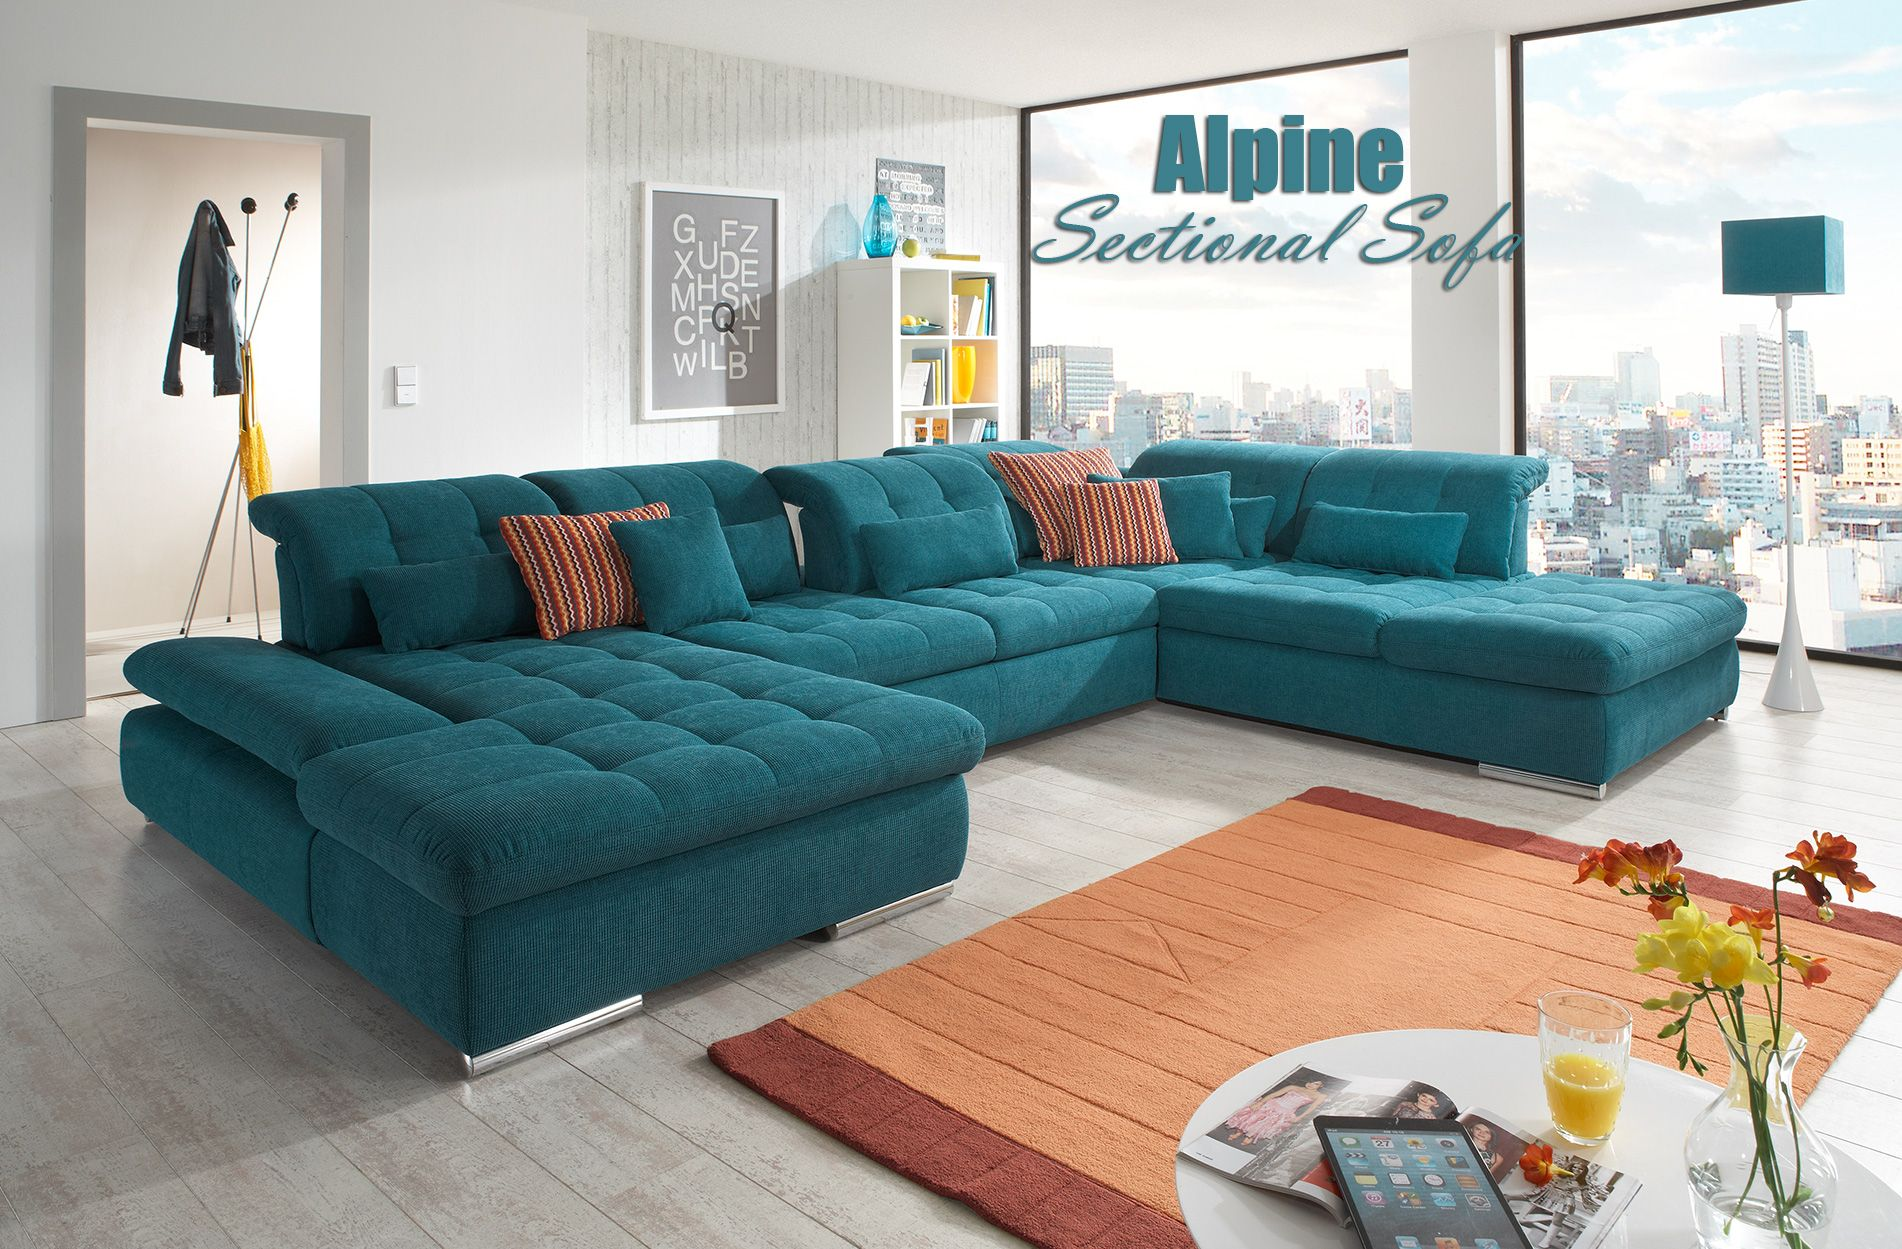 Epic Teal Sectional Couch 25 With Additional Sofas And Couches Set With Teal Sectional Co U Shaped Sectional Sofa Living Room Sofa Design Modern Sofa Sectional